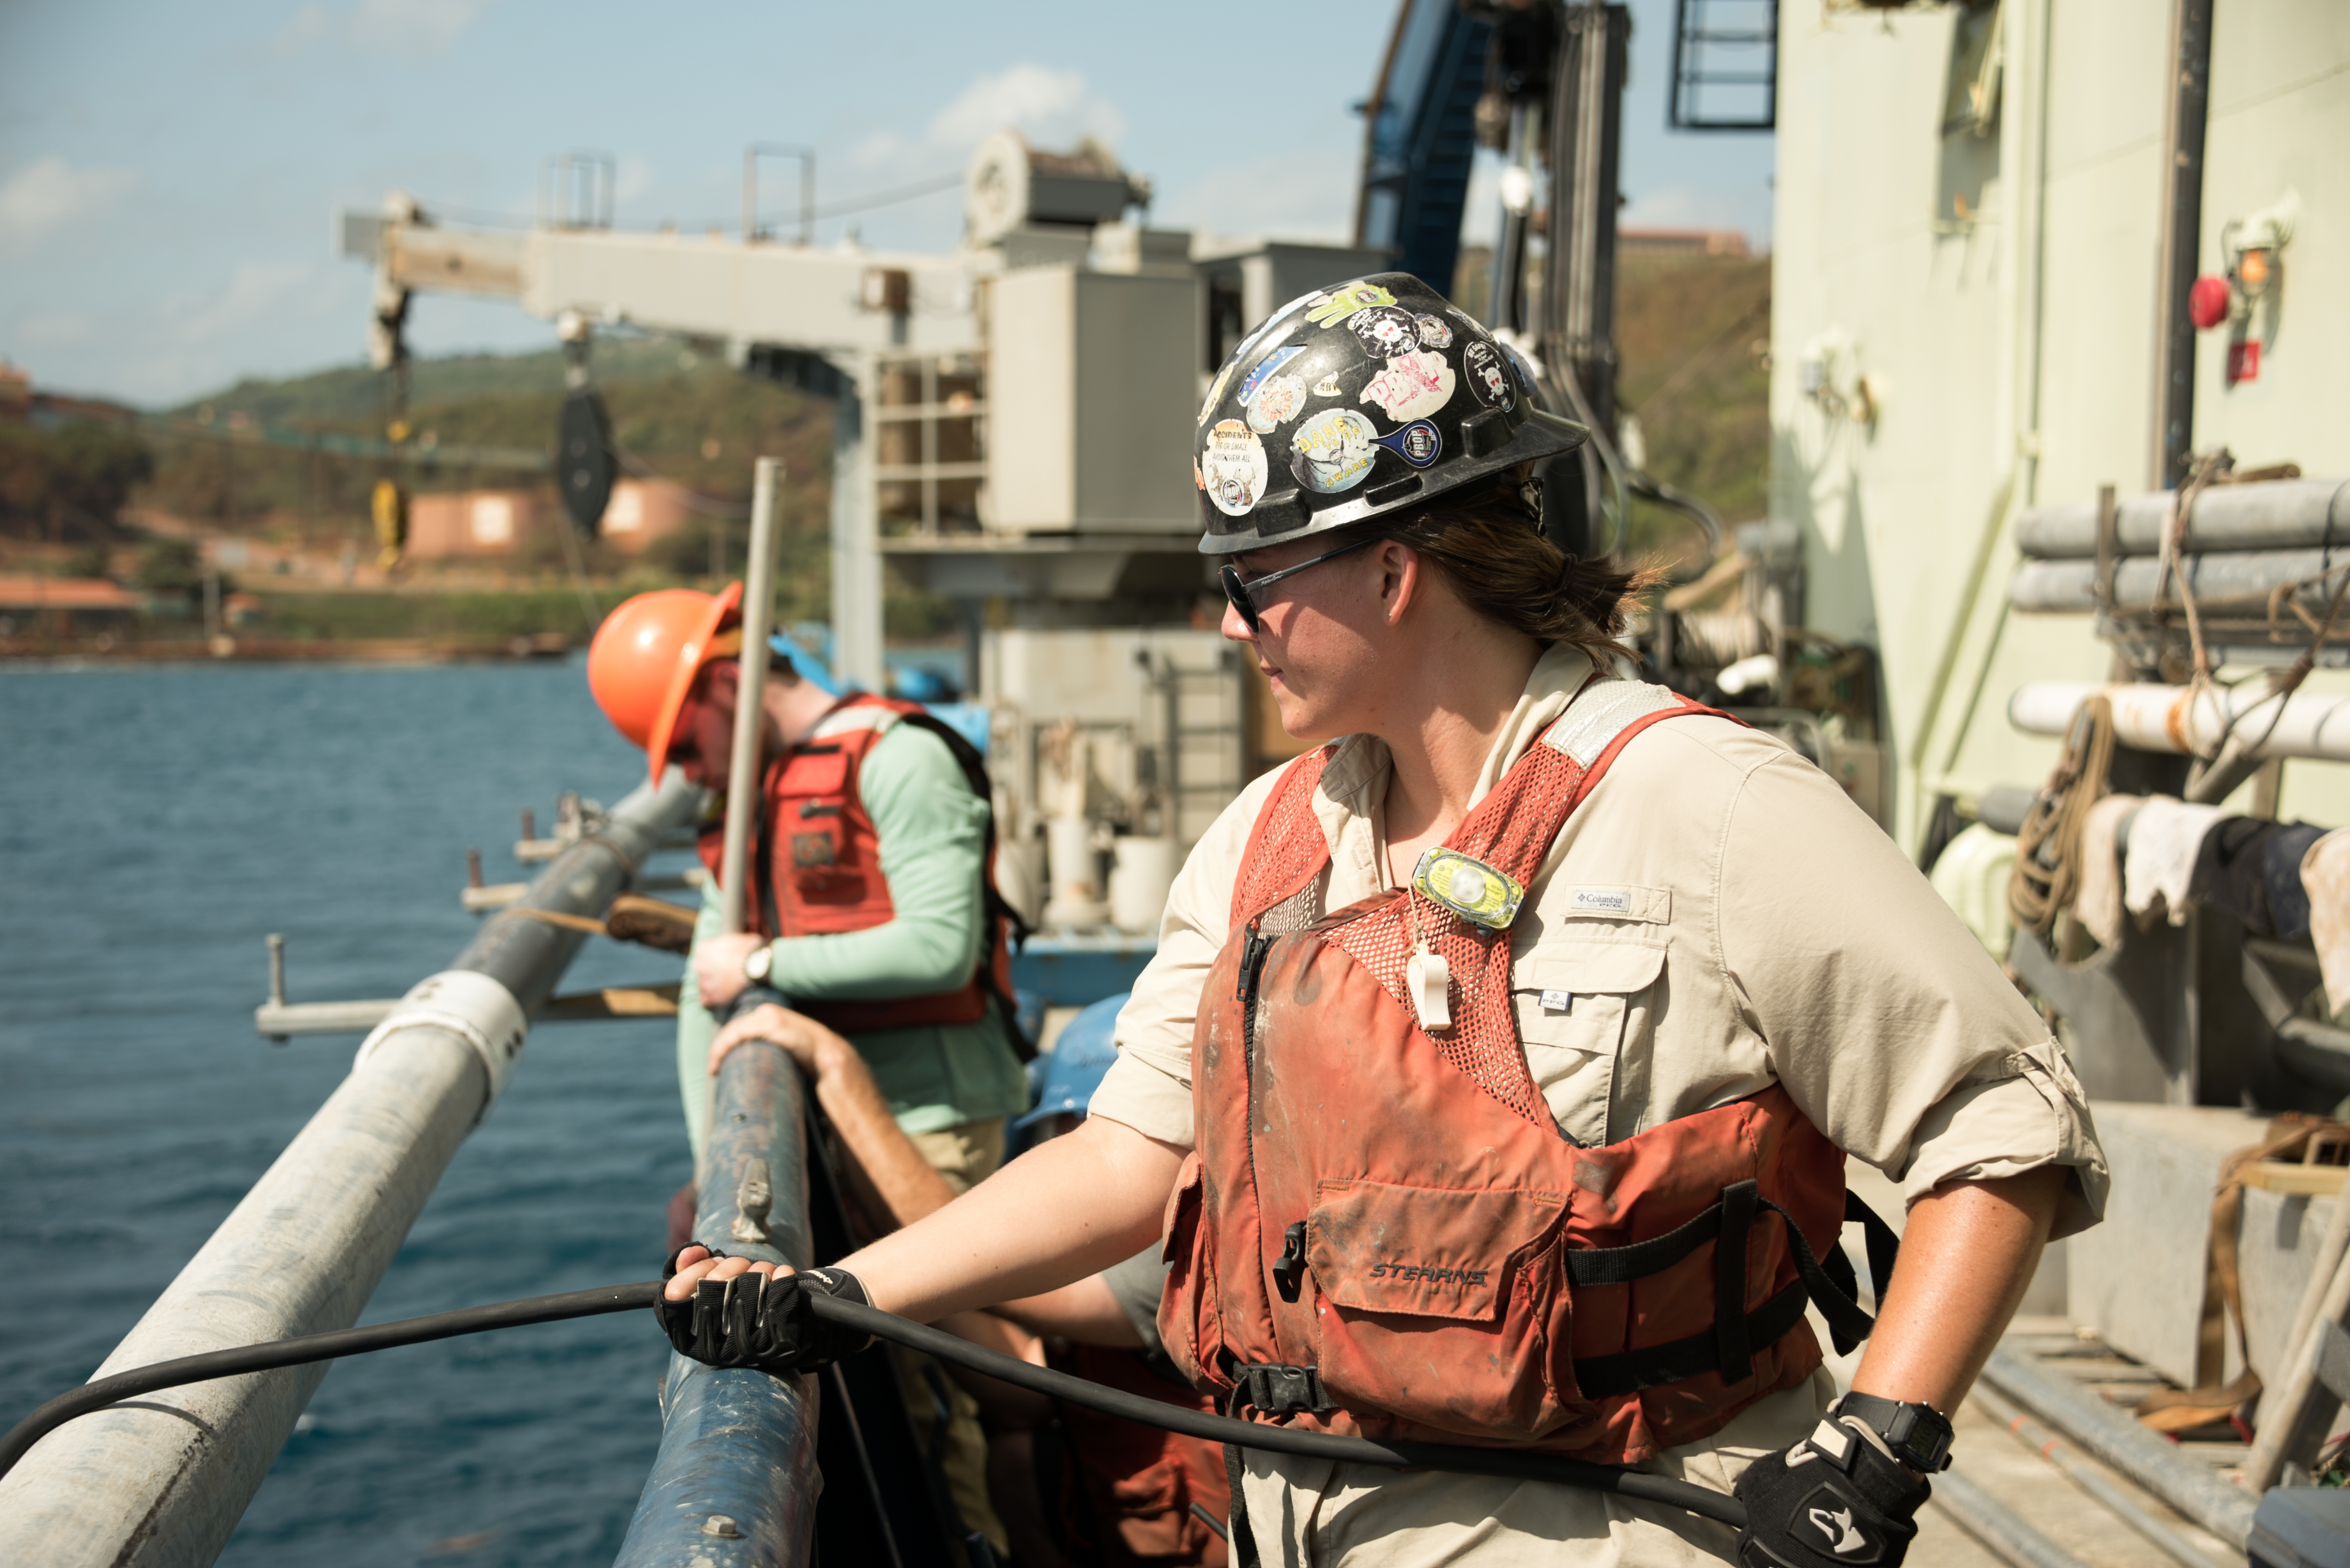 a woman in working gear pulling a line from a body of water